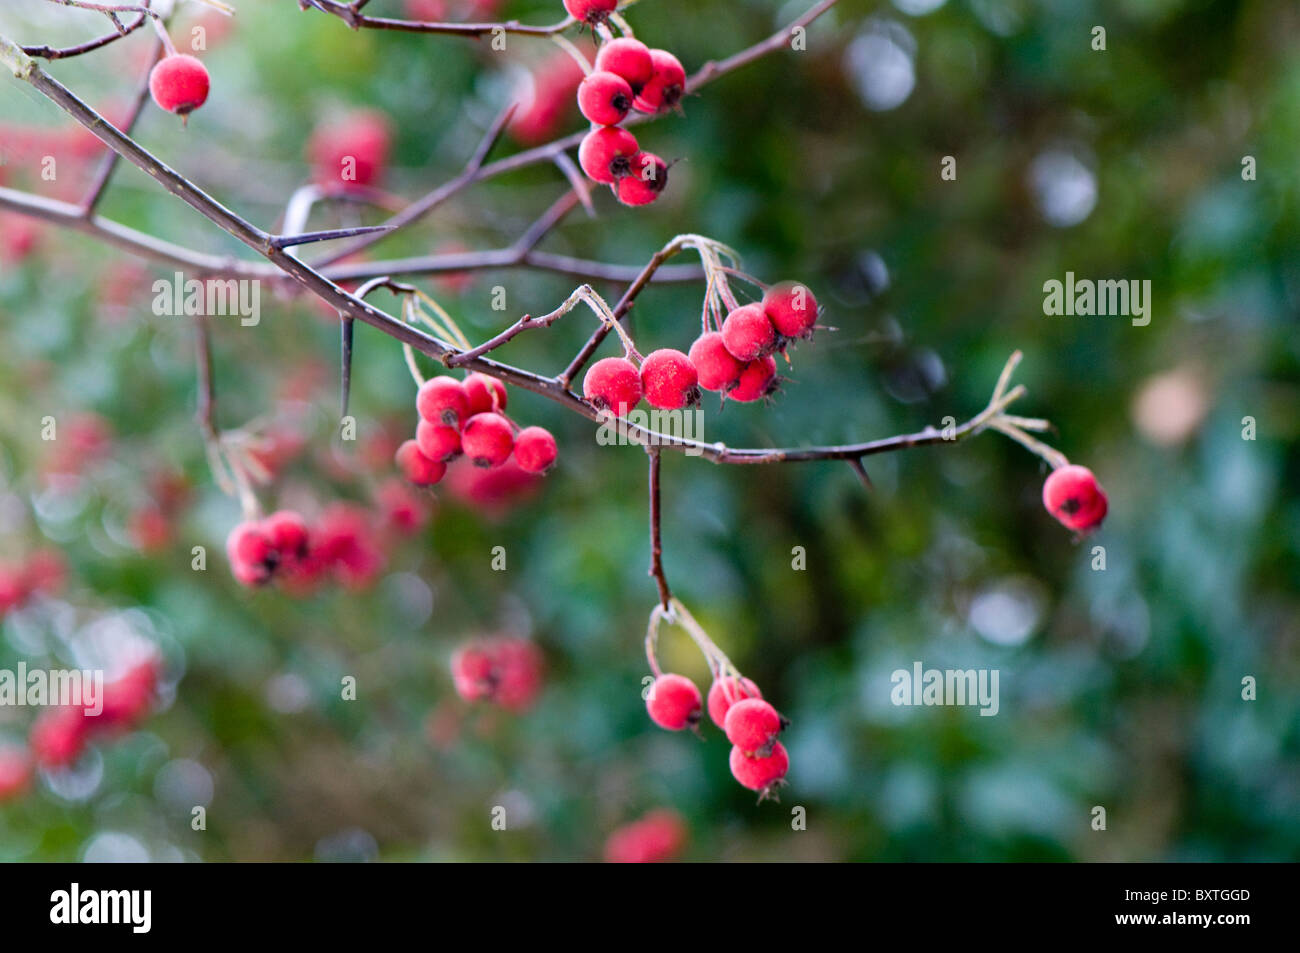 Vibrant red winter berries against soft background - Stock Image